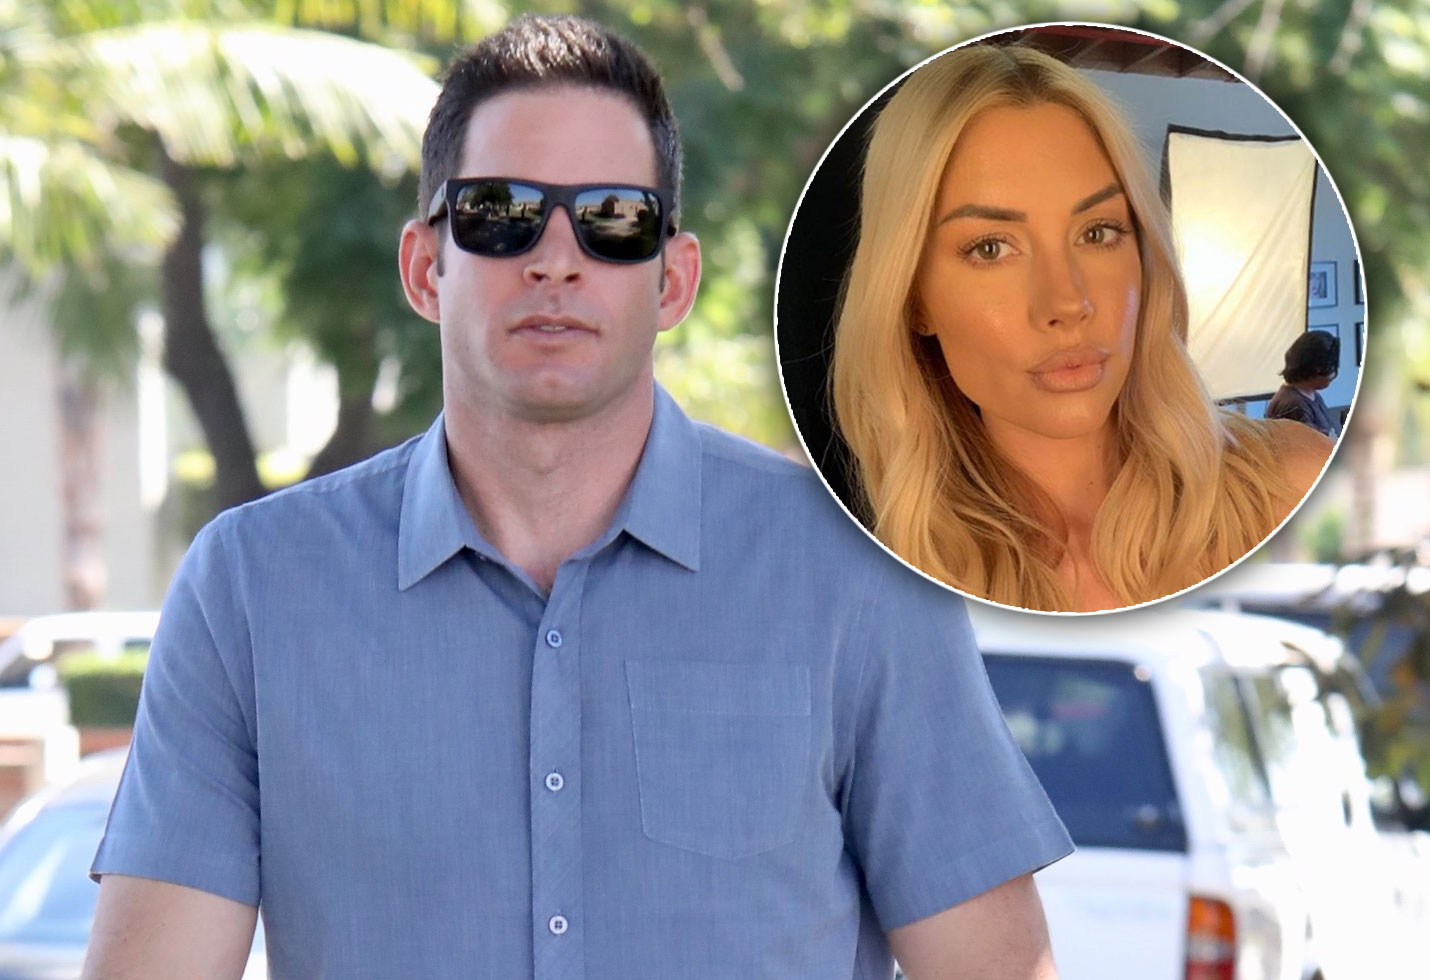 Tarek El Moussa and Heather Rae Young